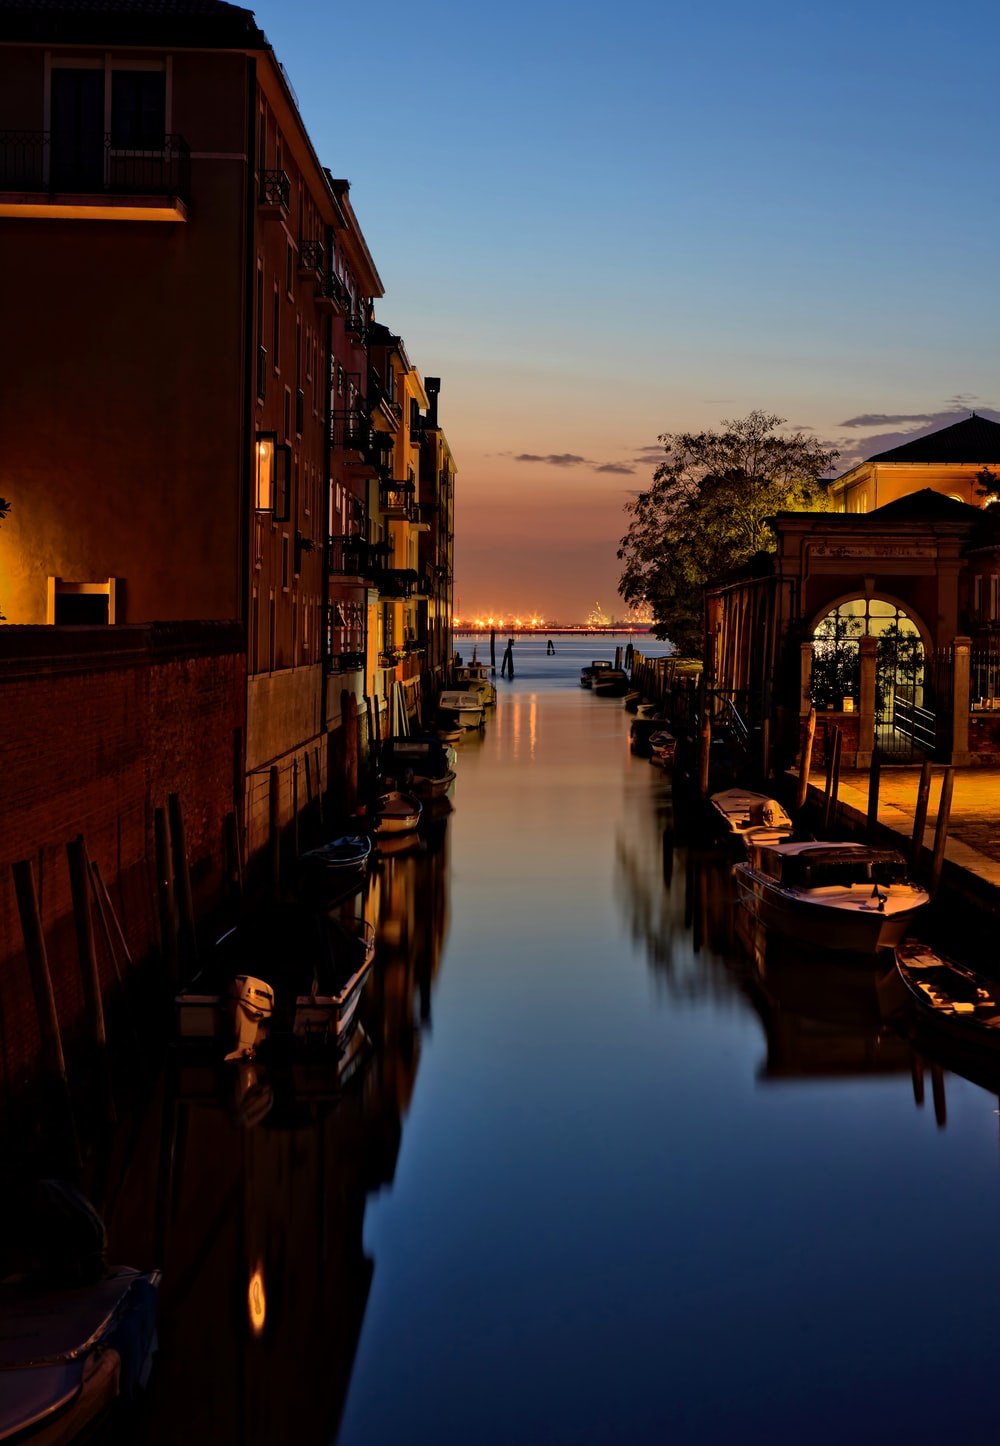 landscape photo of river with boats beside a building